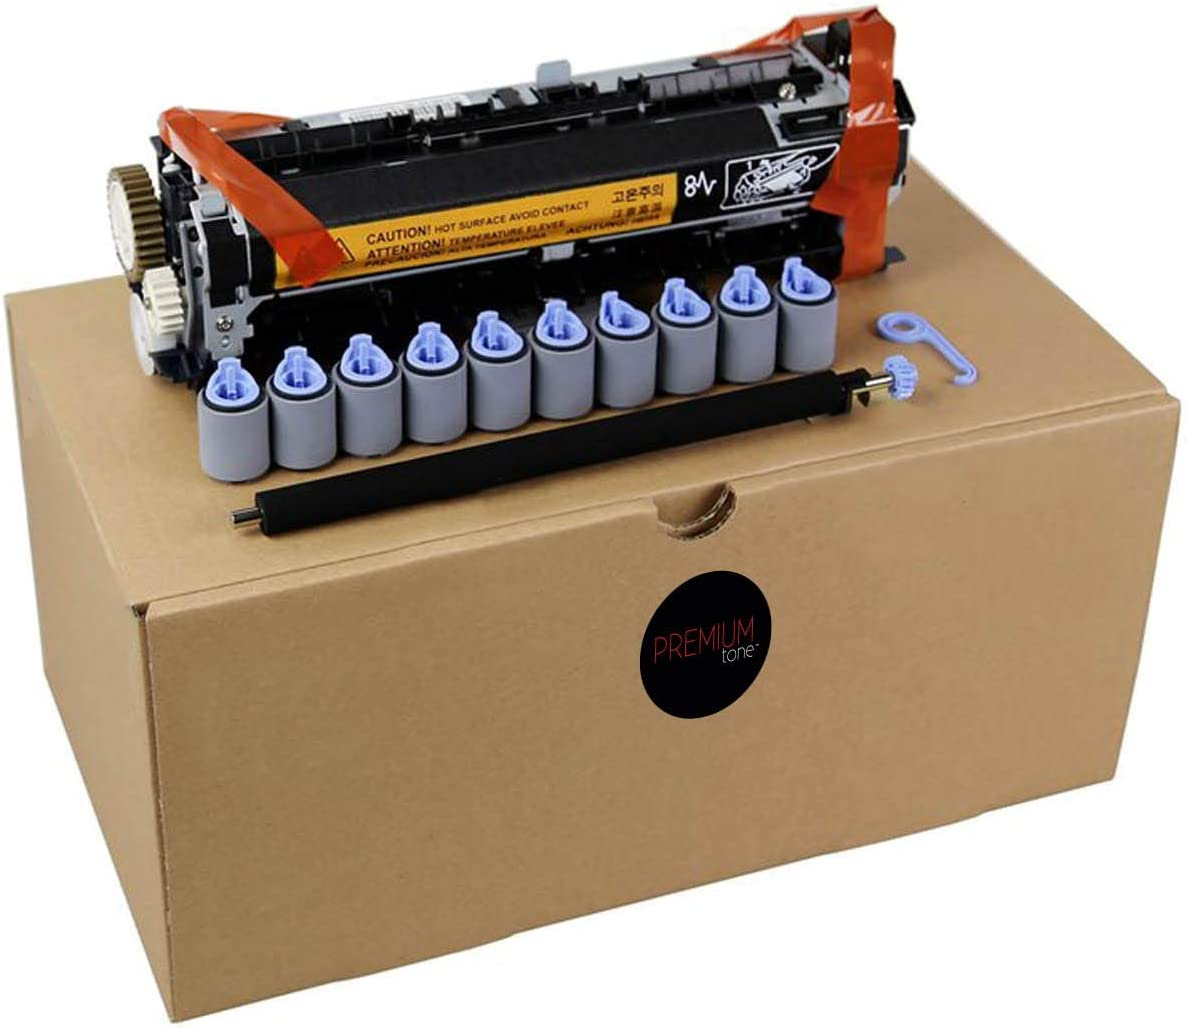 Premium Tone Replacement for HP CB388A - Maintenance Kit 110V for Laserjet P4014dn, Laserjet P4014n, Laserjet P4015dn, Laserjet P4015n, Laserjet P4015tn, Laserjet P4015x, Laserjet P4515n